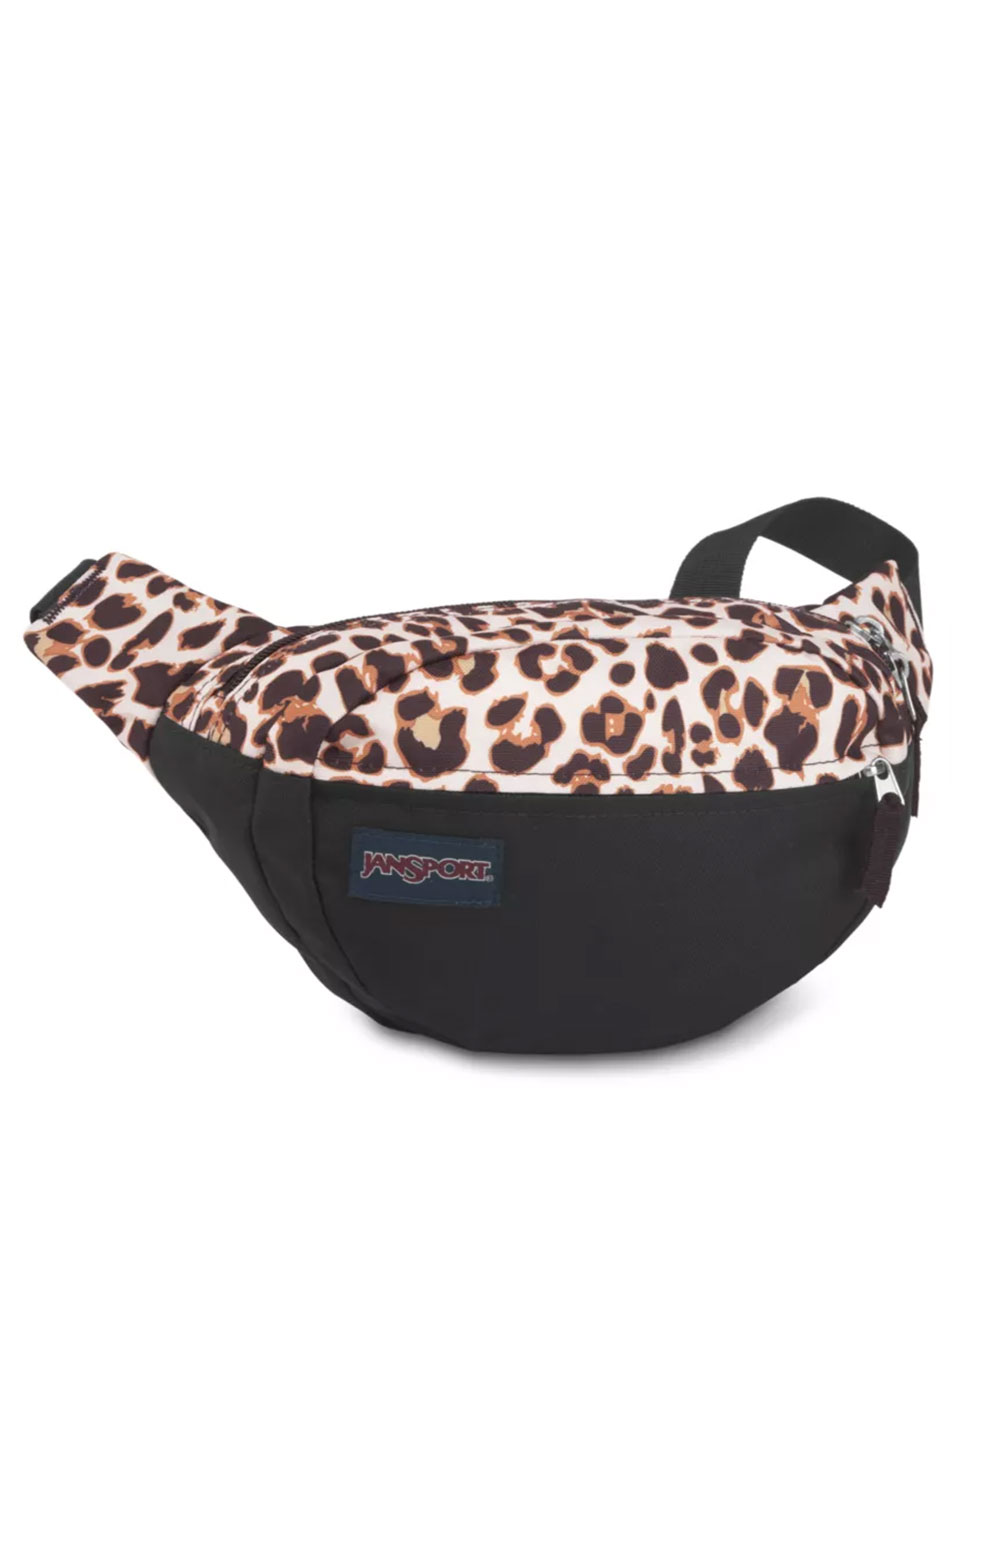 Fifth Avenue Pack - Leopard Life 2